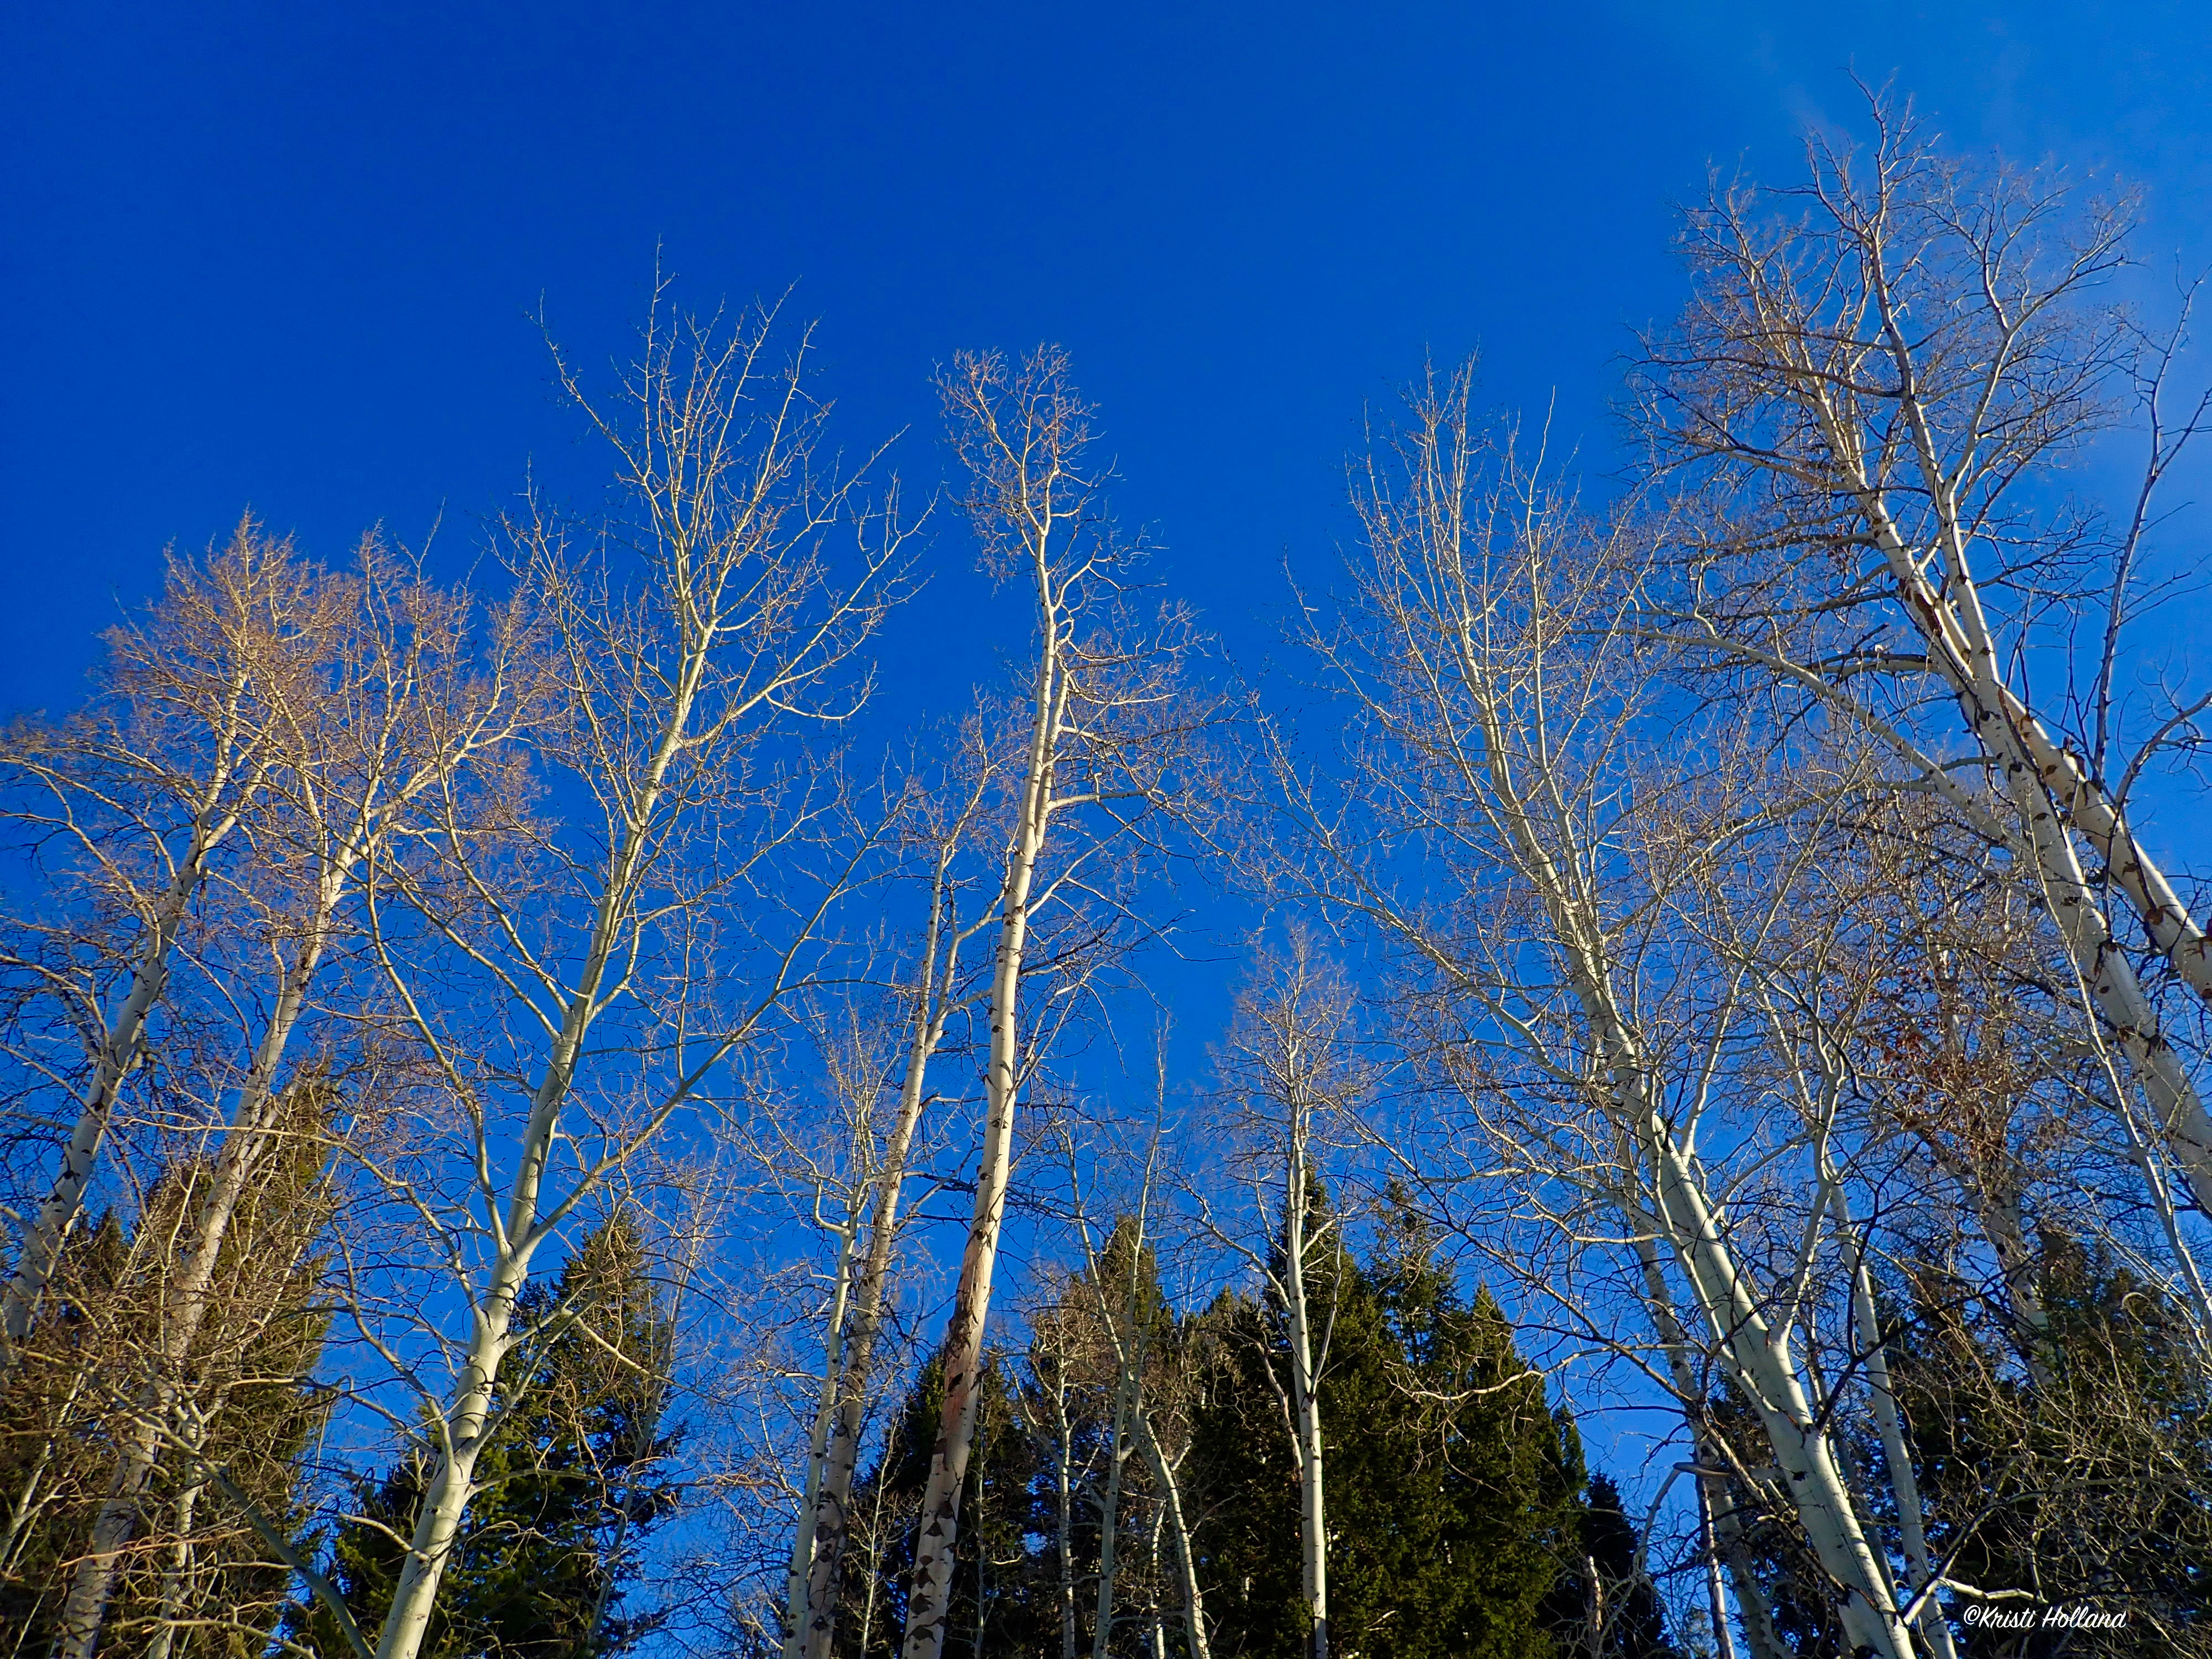 Blue_skytrees_looking_up